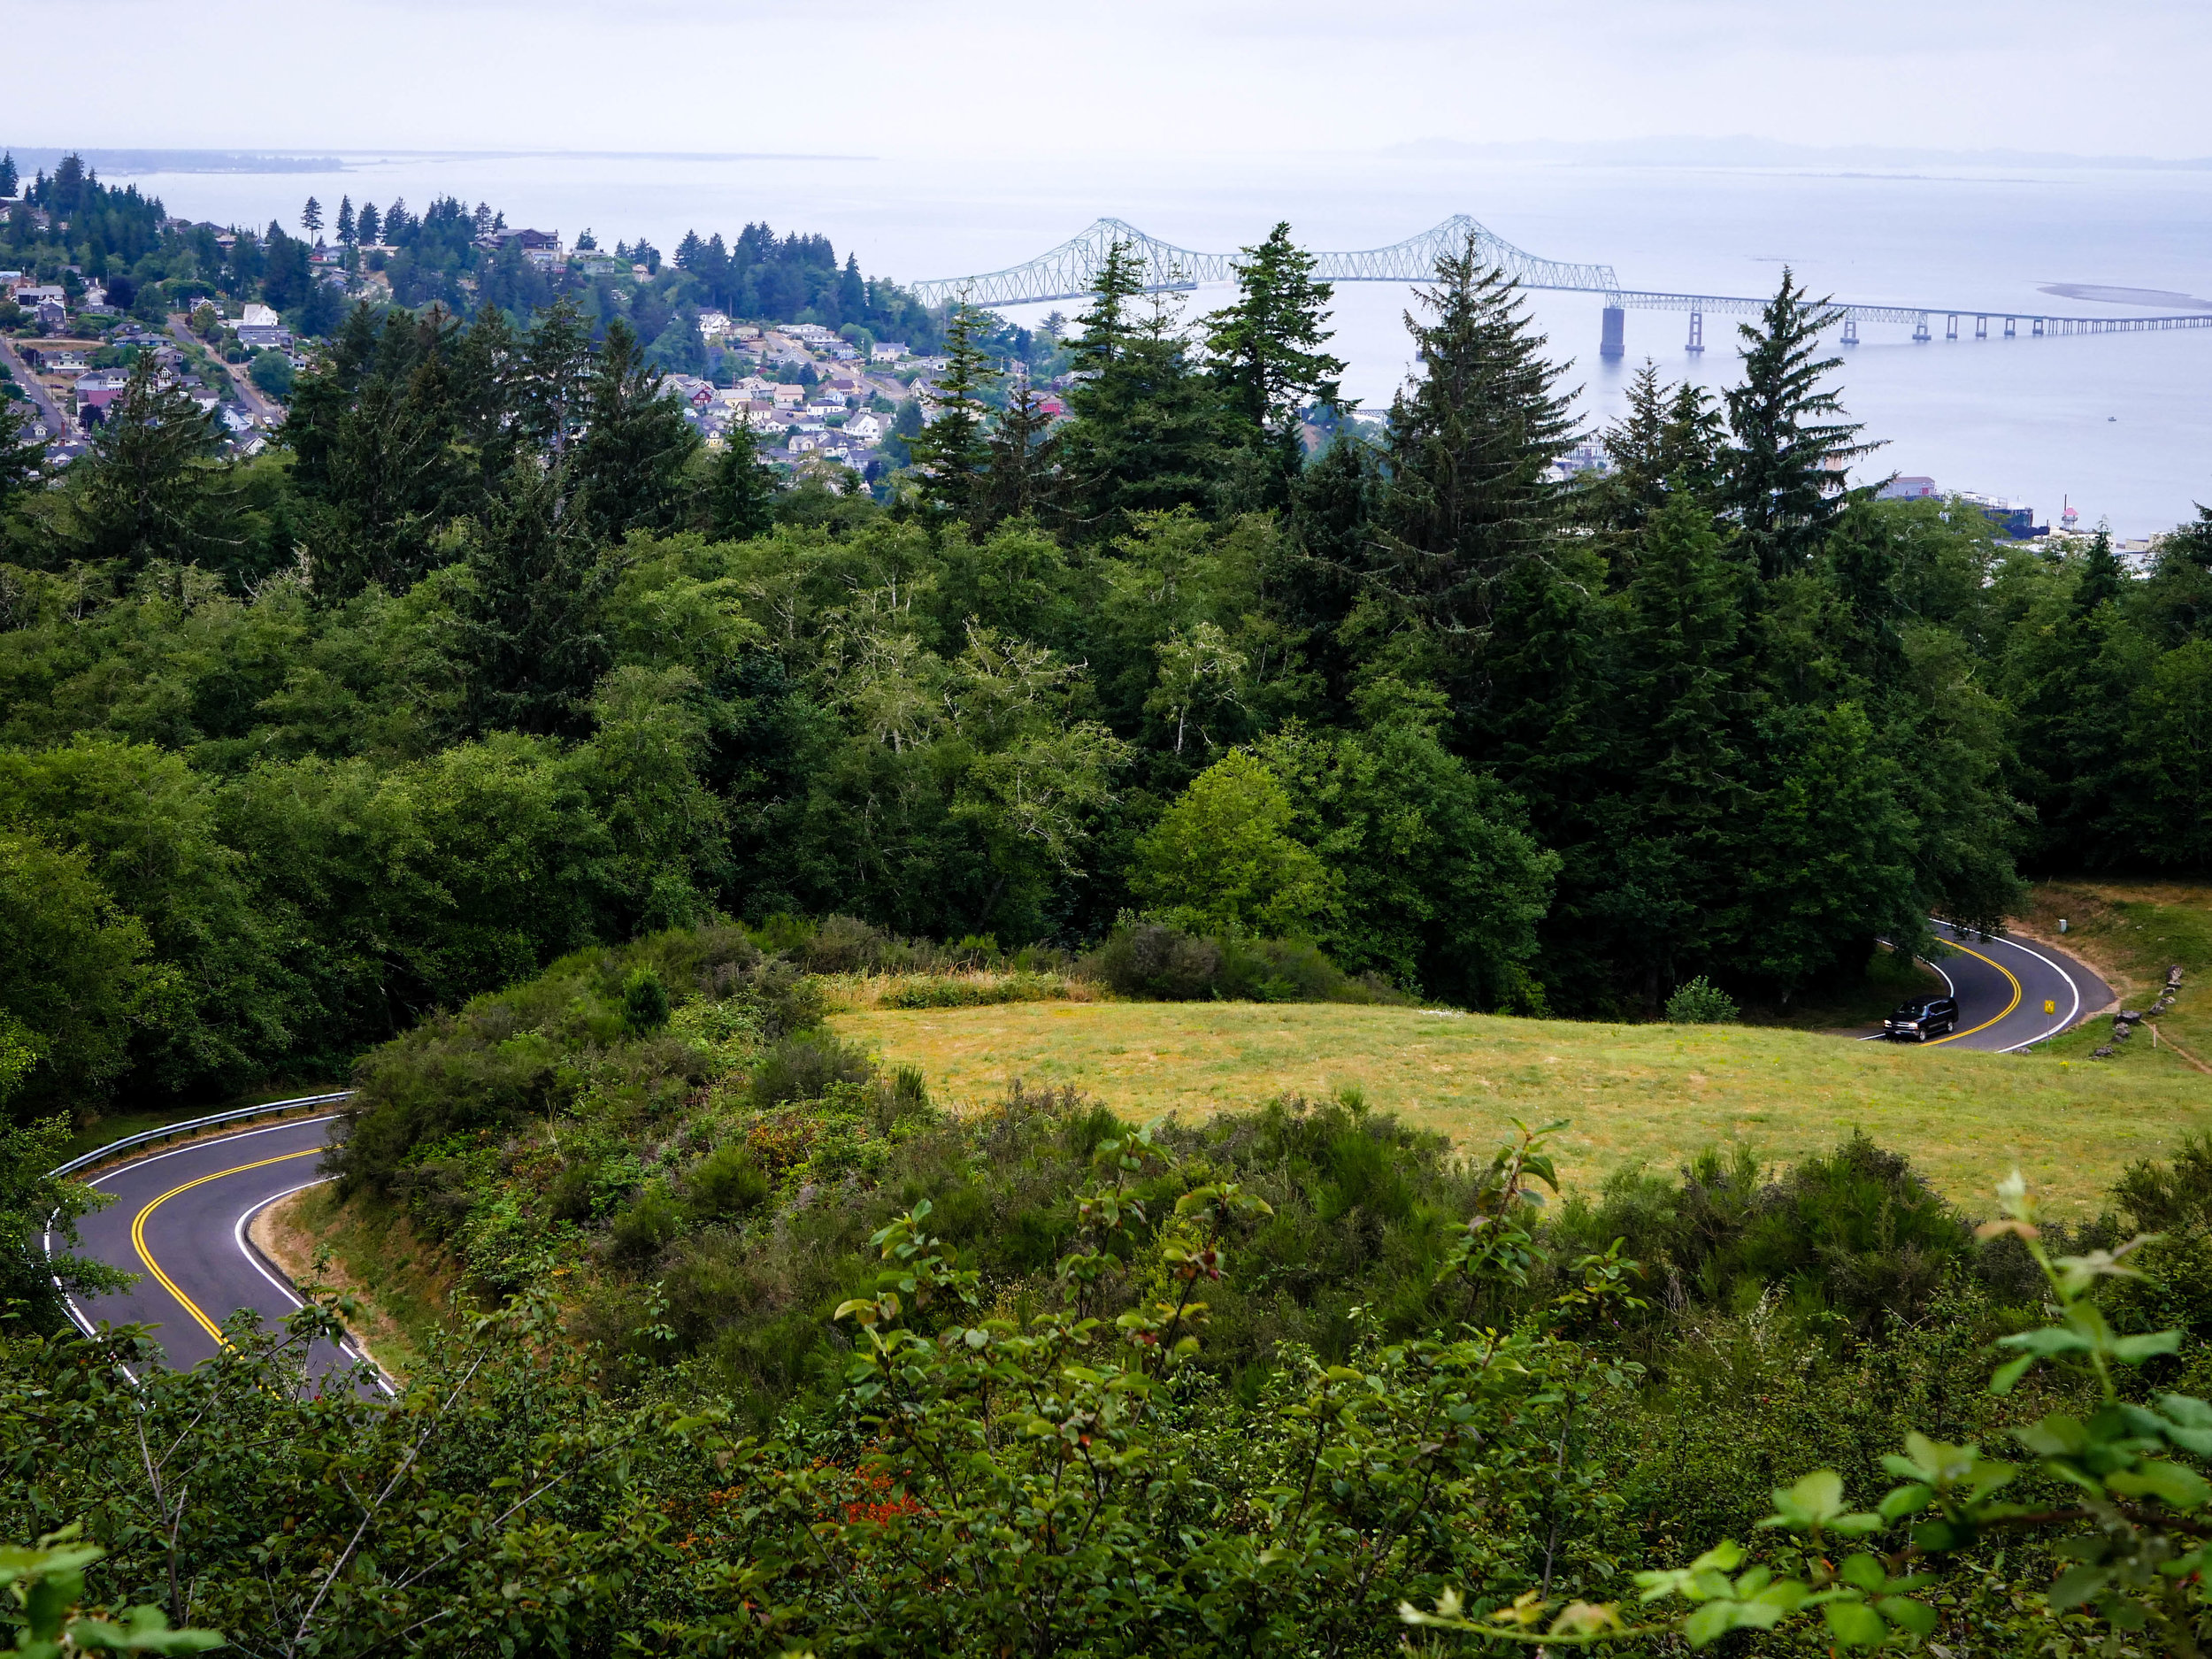 The view of Astoria from the Astoria Column